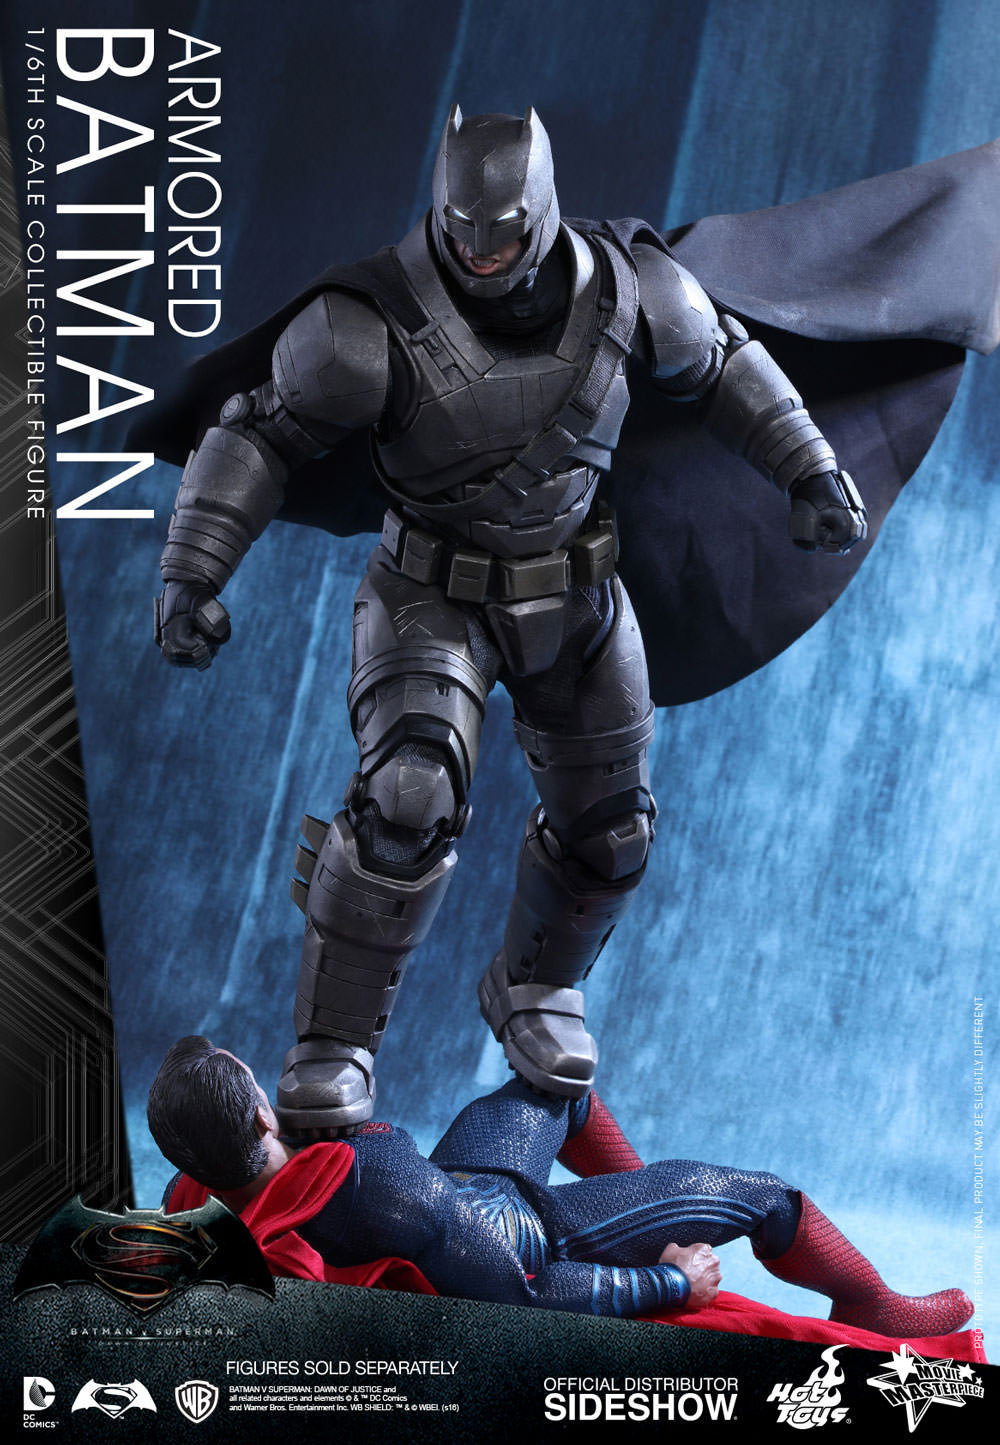 Hot Toys Armored Batman Sixth Scale Figure A31thoRO